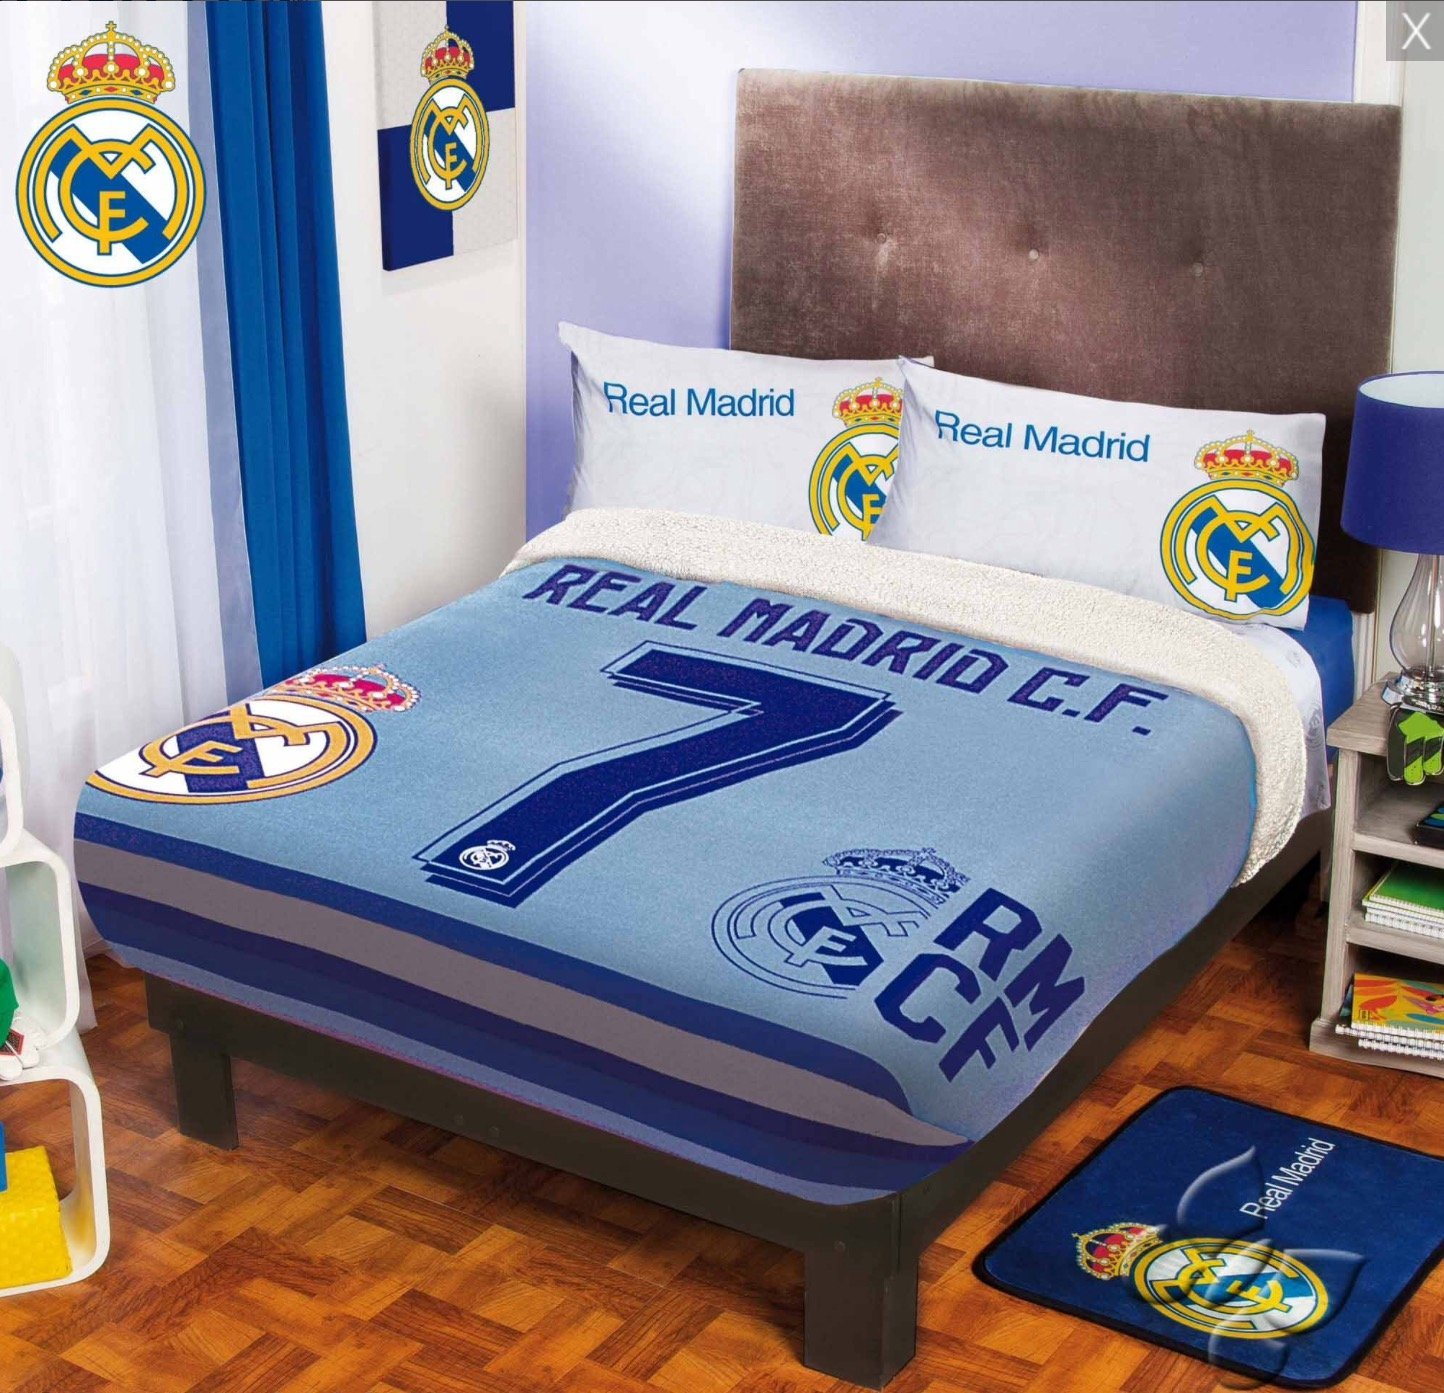 CRISTIANO RONALDO CR7 REAL MADRID C.F. ORIGINAL LICENSED FUZZY FLEECE BLANKET 5 PCS QUEEN SIZE